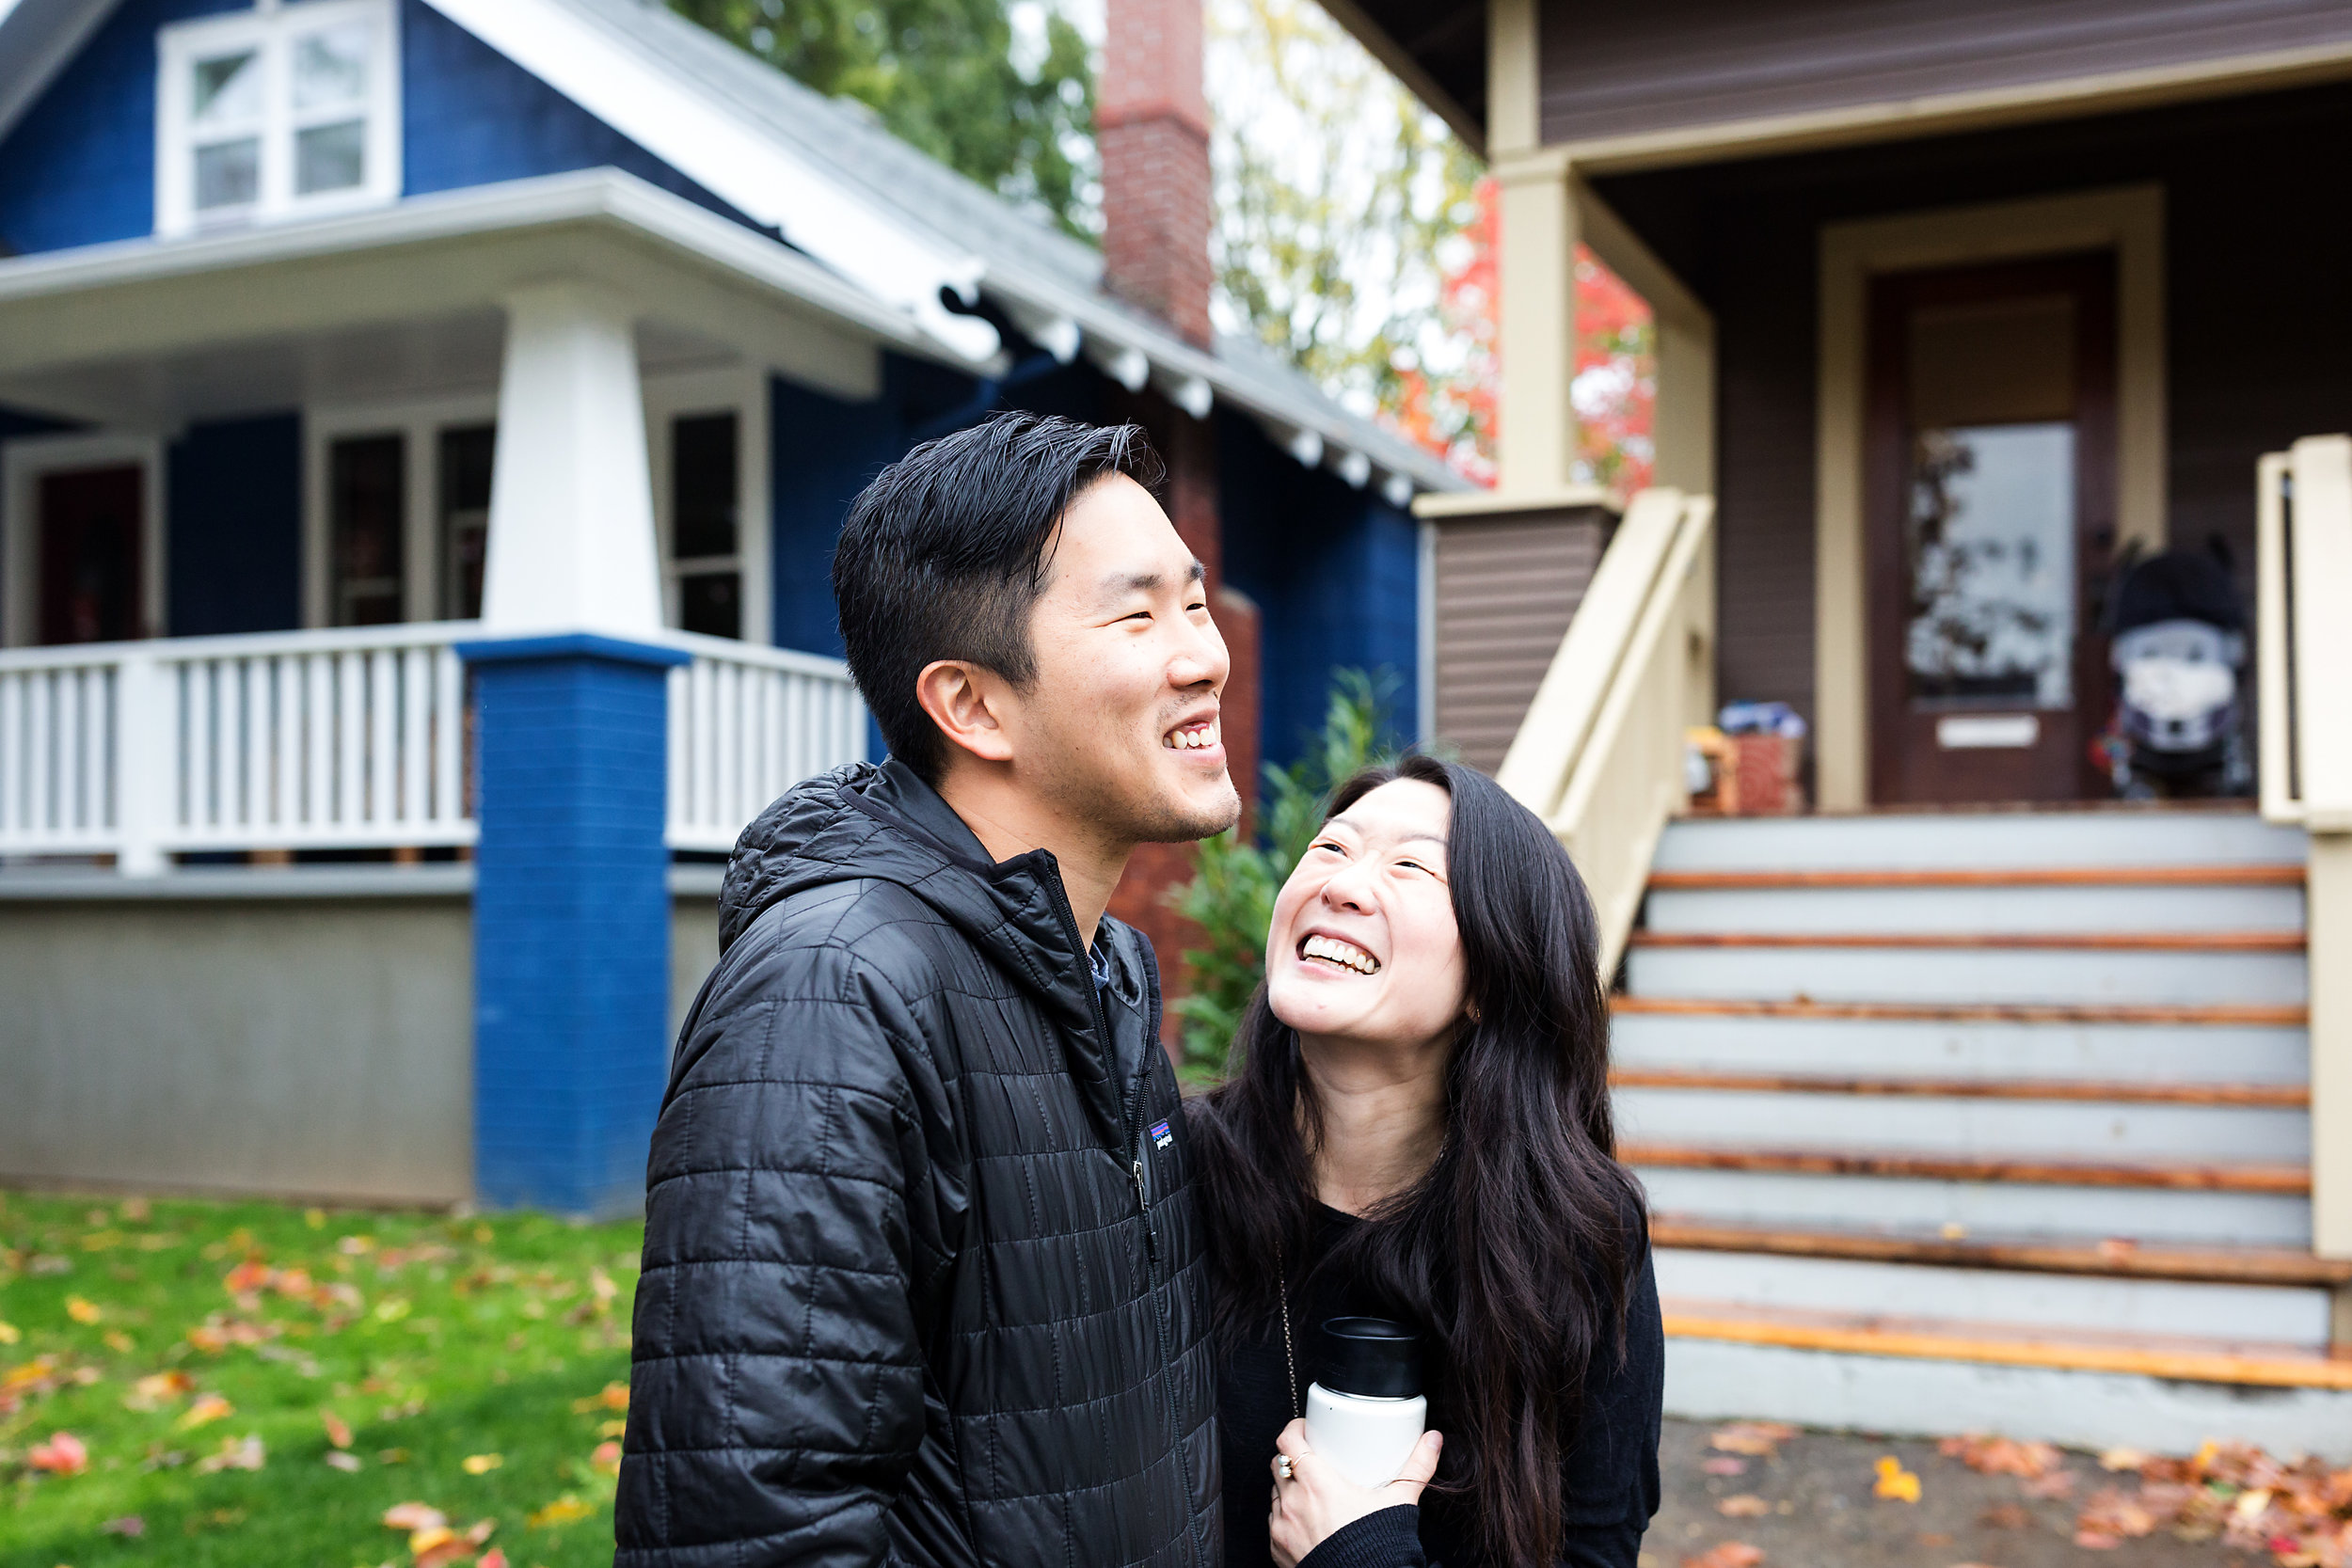 man and woman hugging and laughing outside home